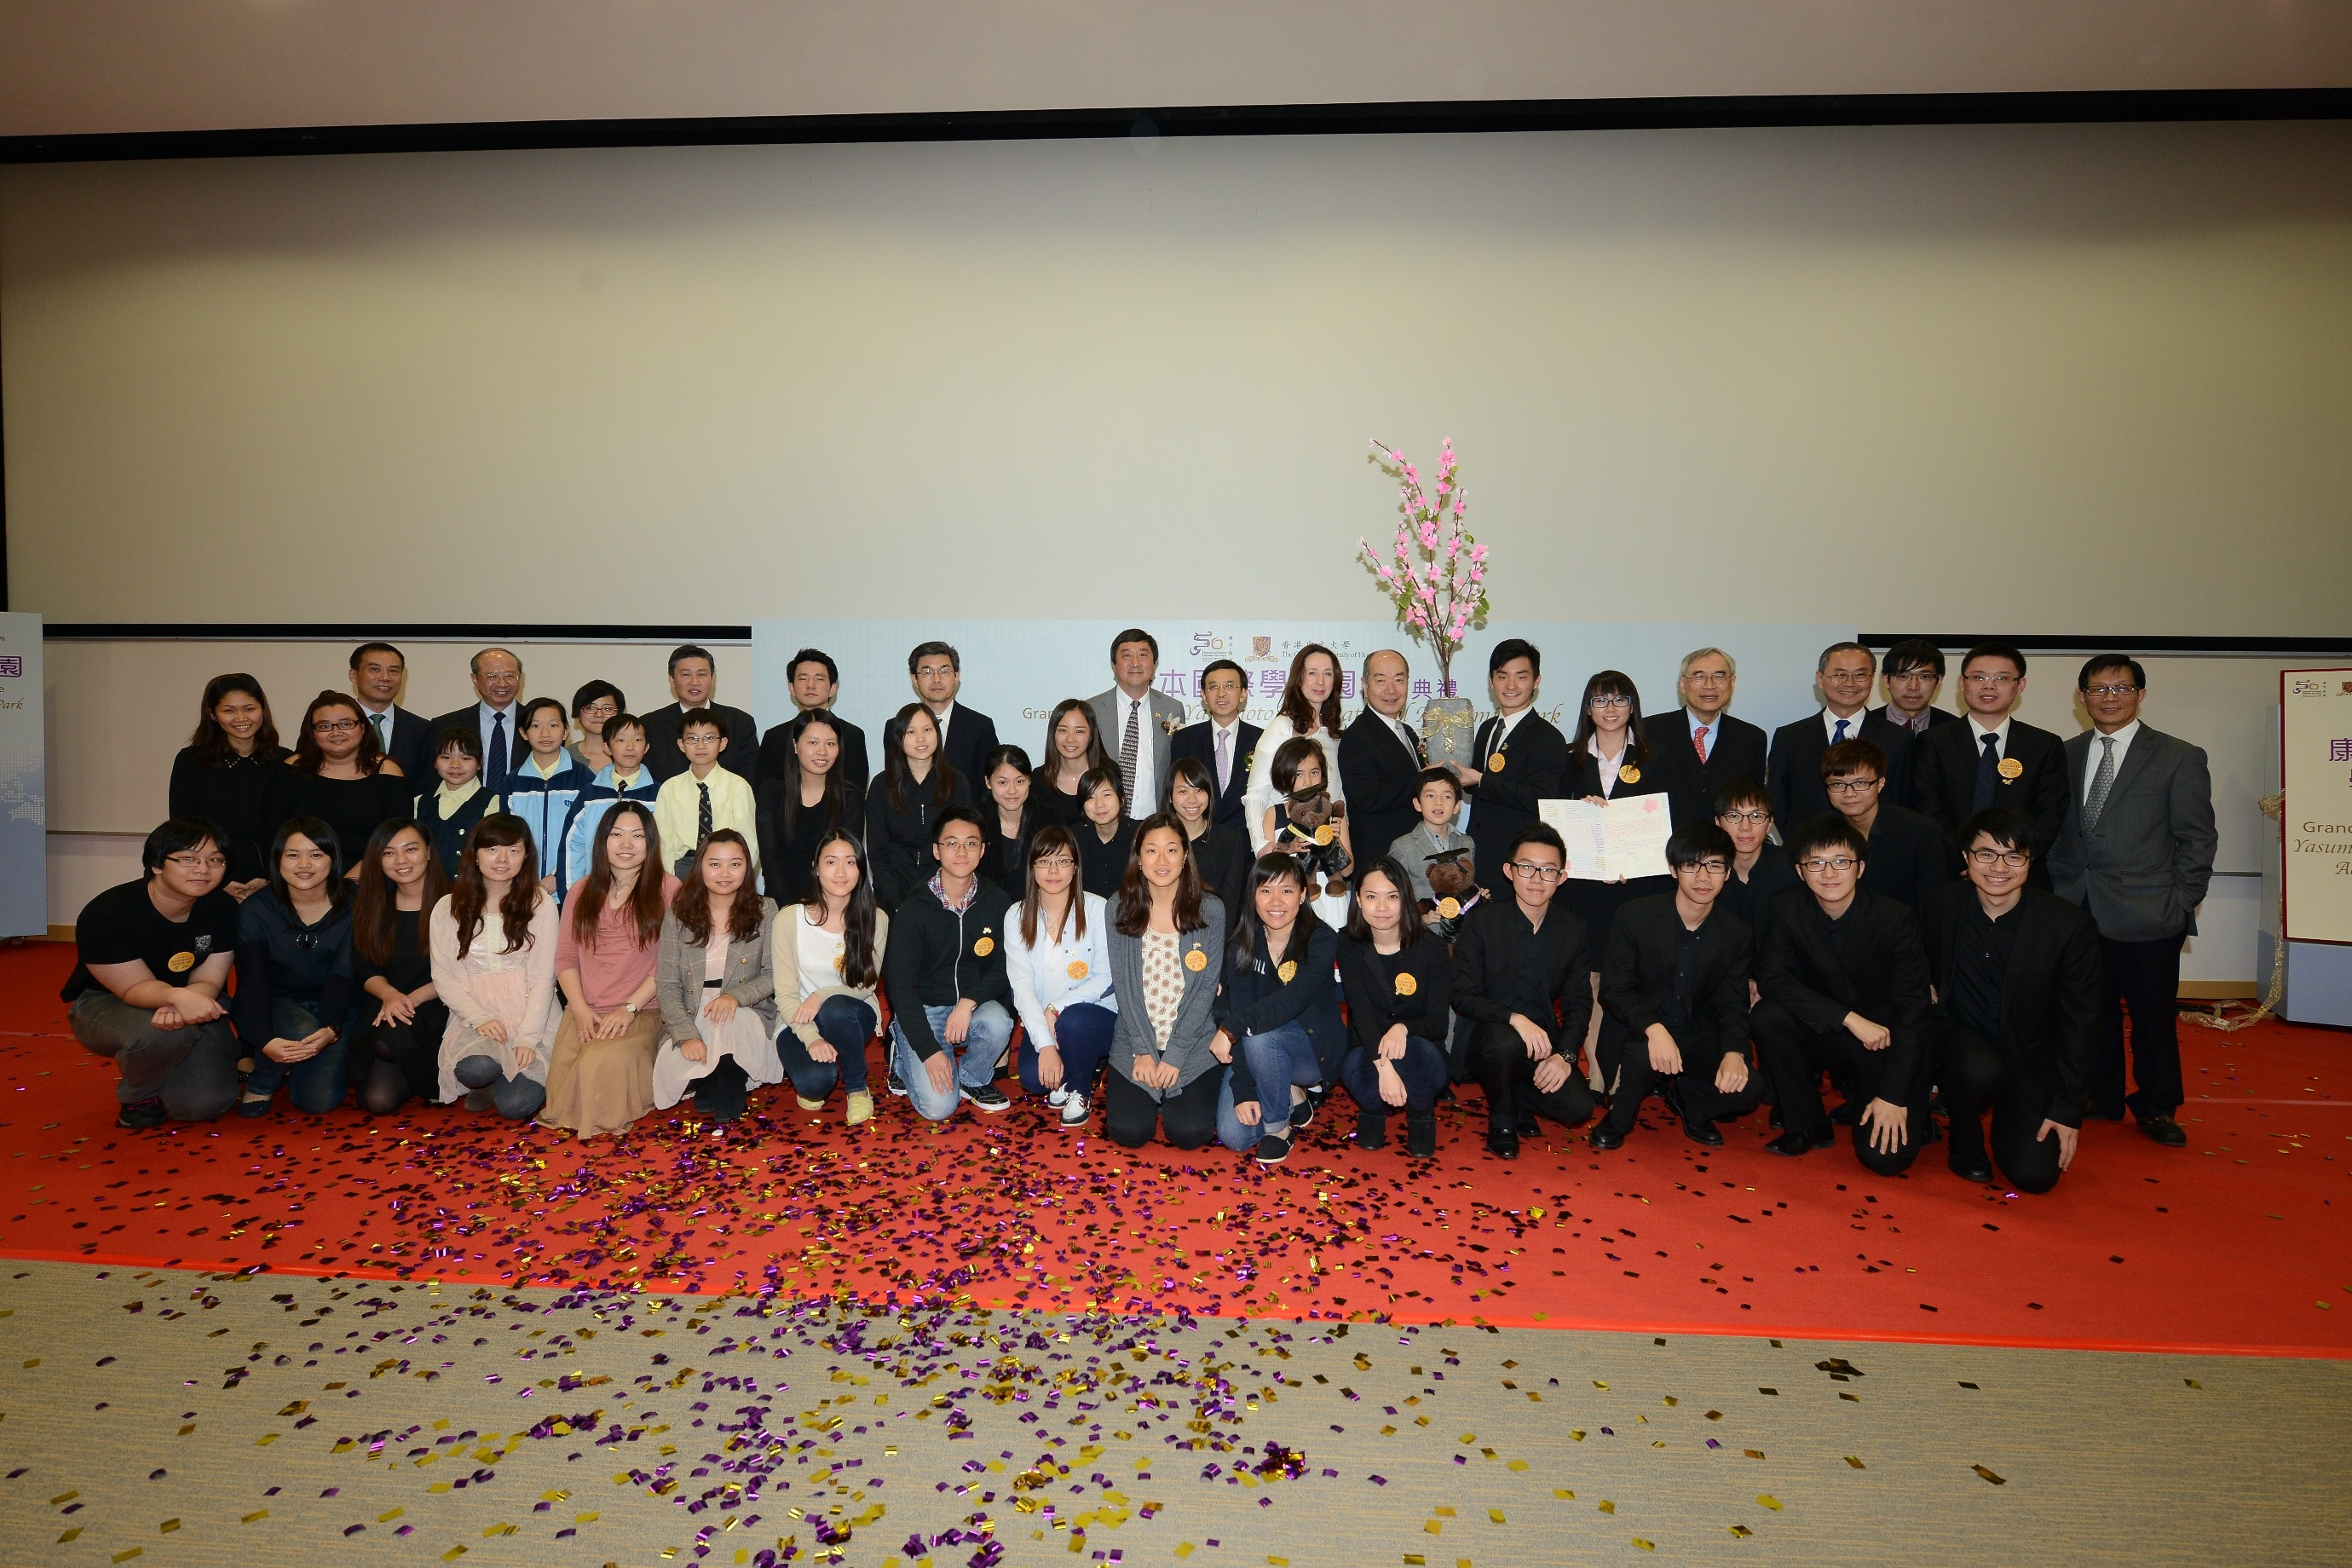 A group photo of the officiating guests, CUHK members and Yasumoto scholars.